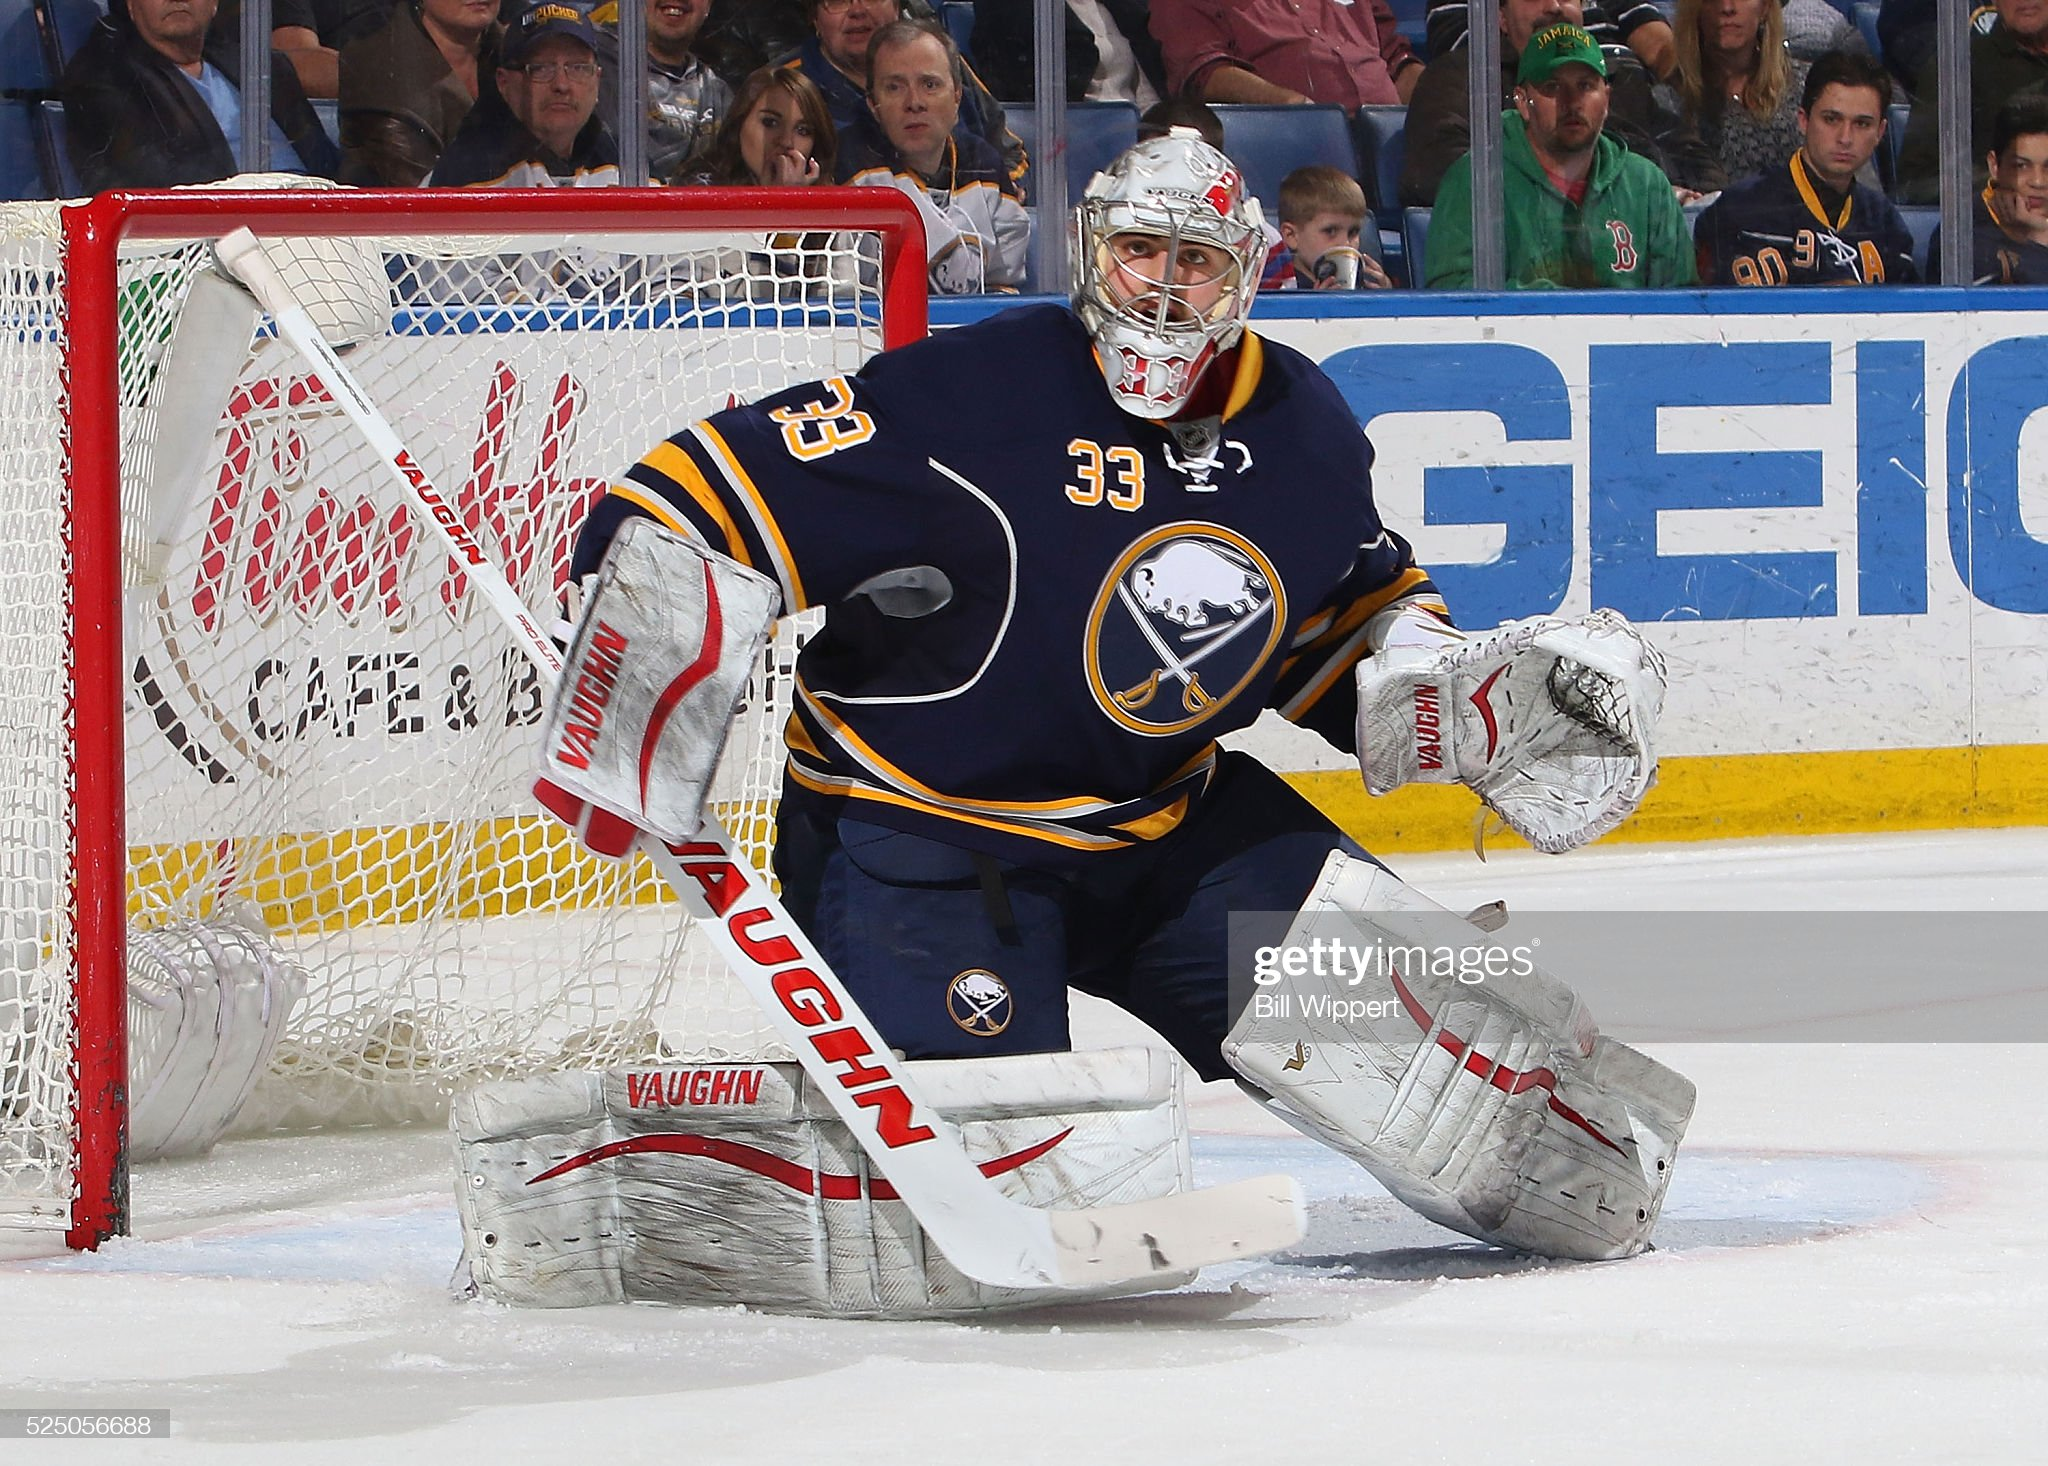 jason-kasdorf-of-the-buffalo-sabres-tend